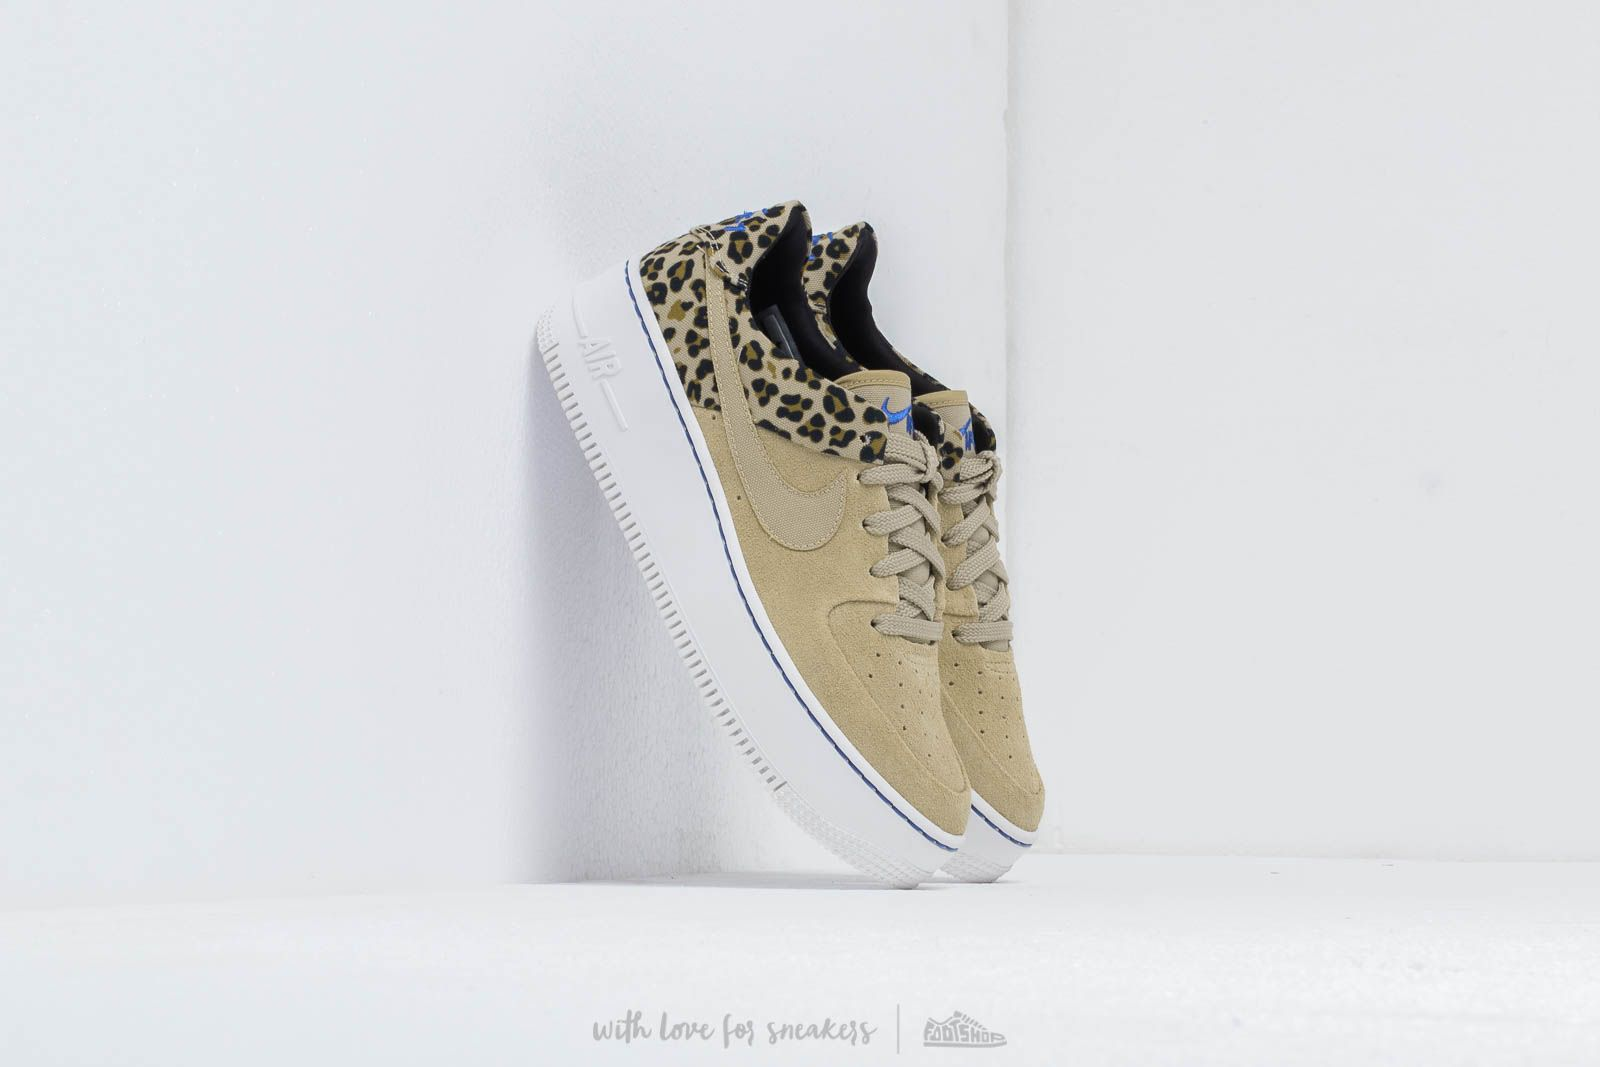 new arrivals 633b4 f8913 Nike W Air Force 1 Sage Low Premium Desert Ore  Racer Blue-Black-